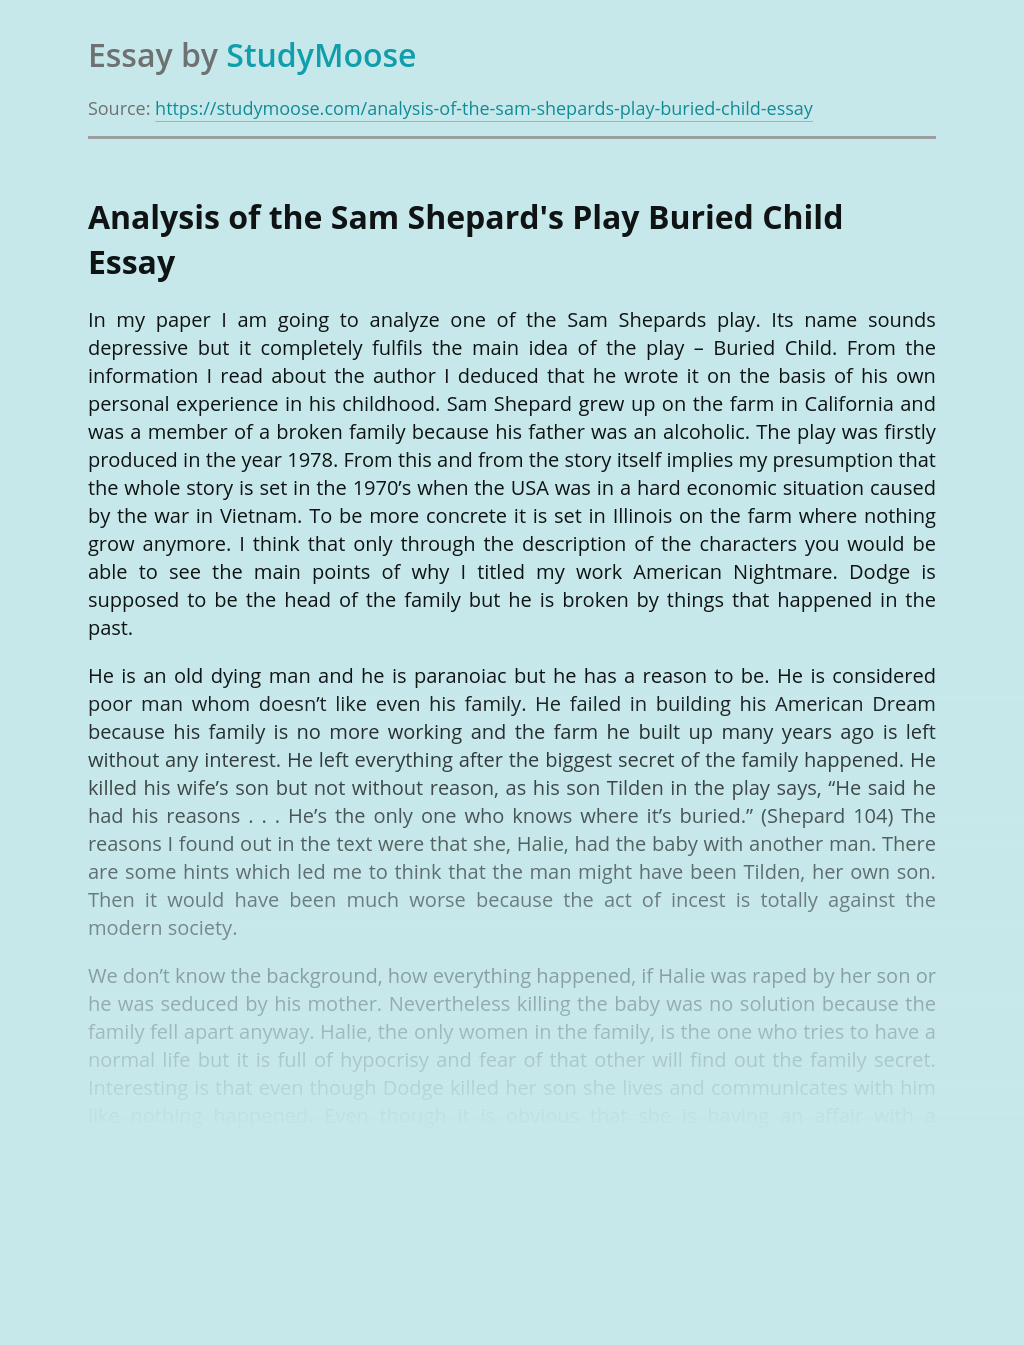 Analysis of the Sam Shepard's Play Buried Child